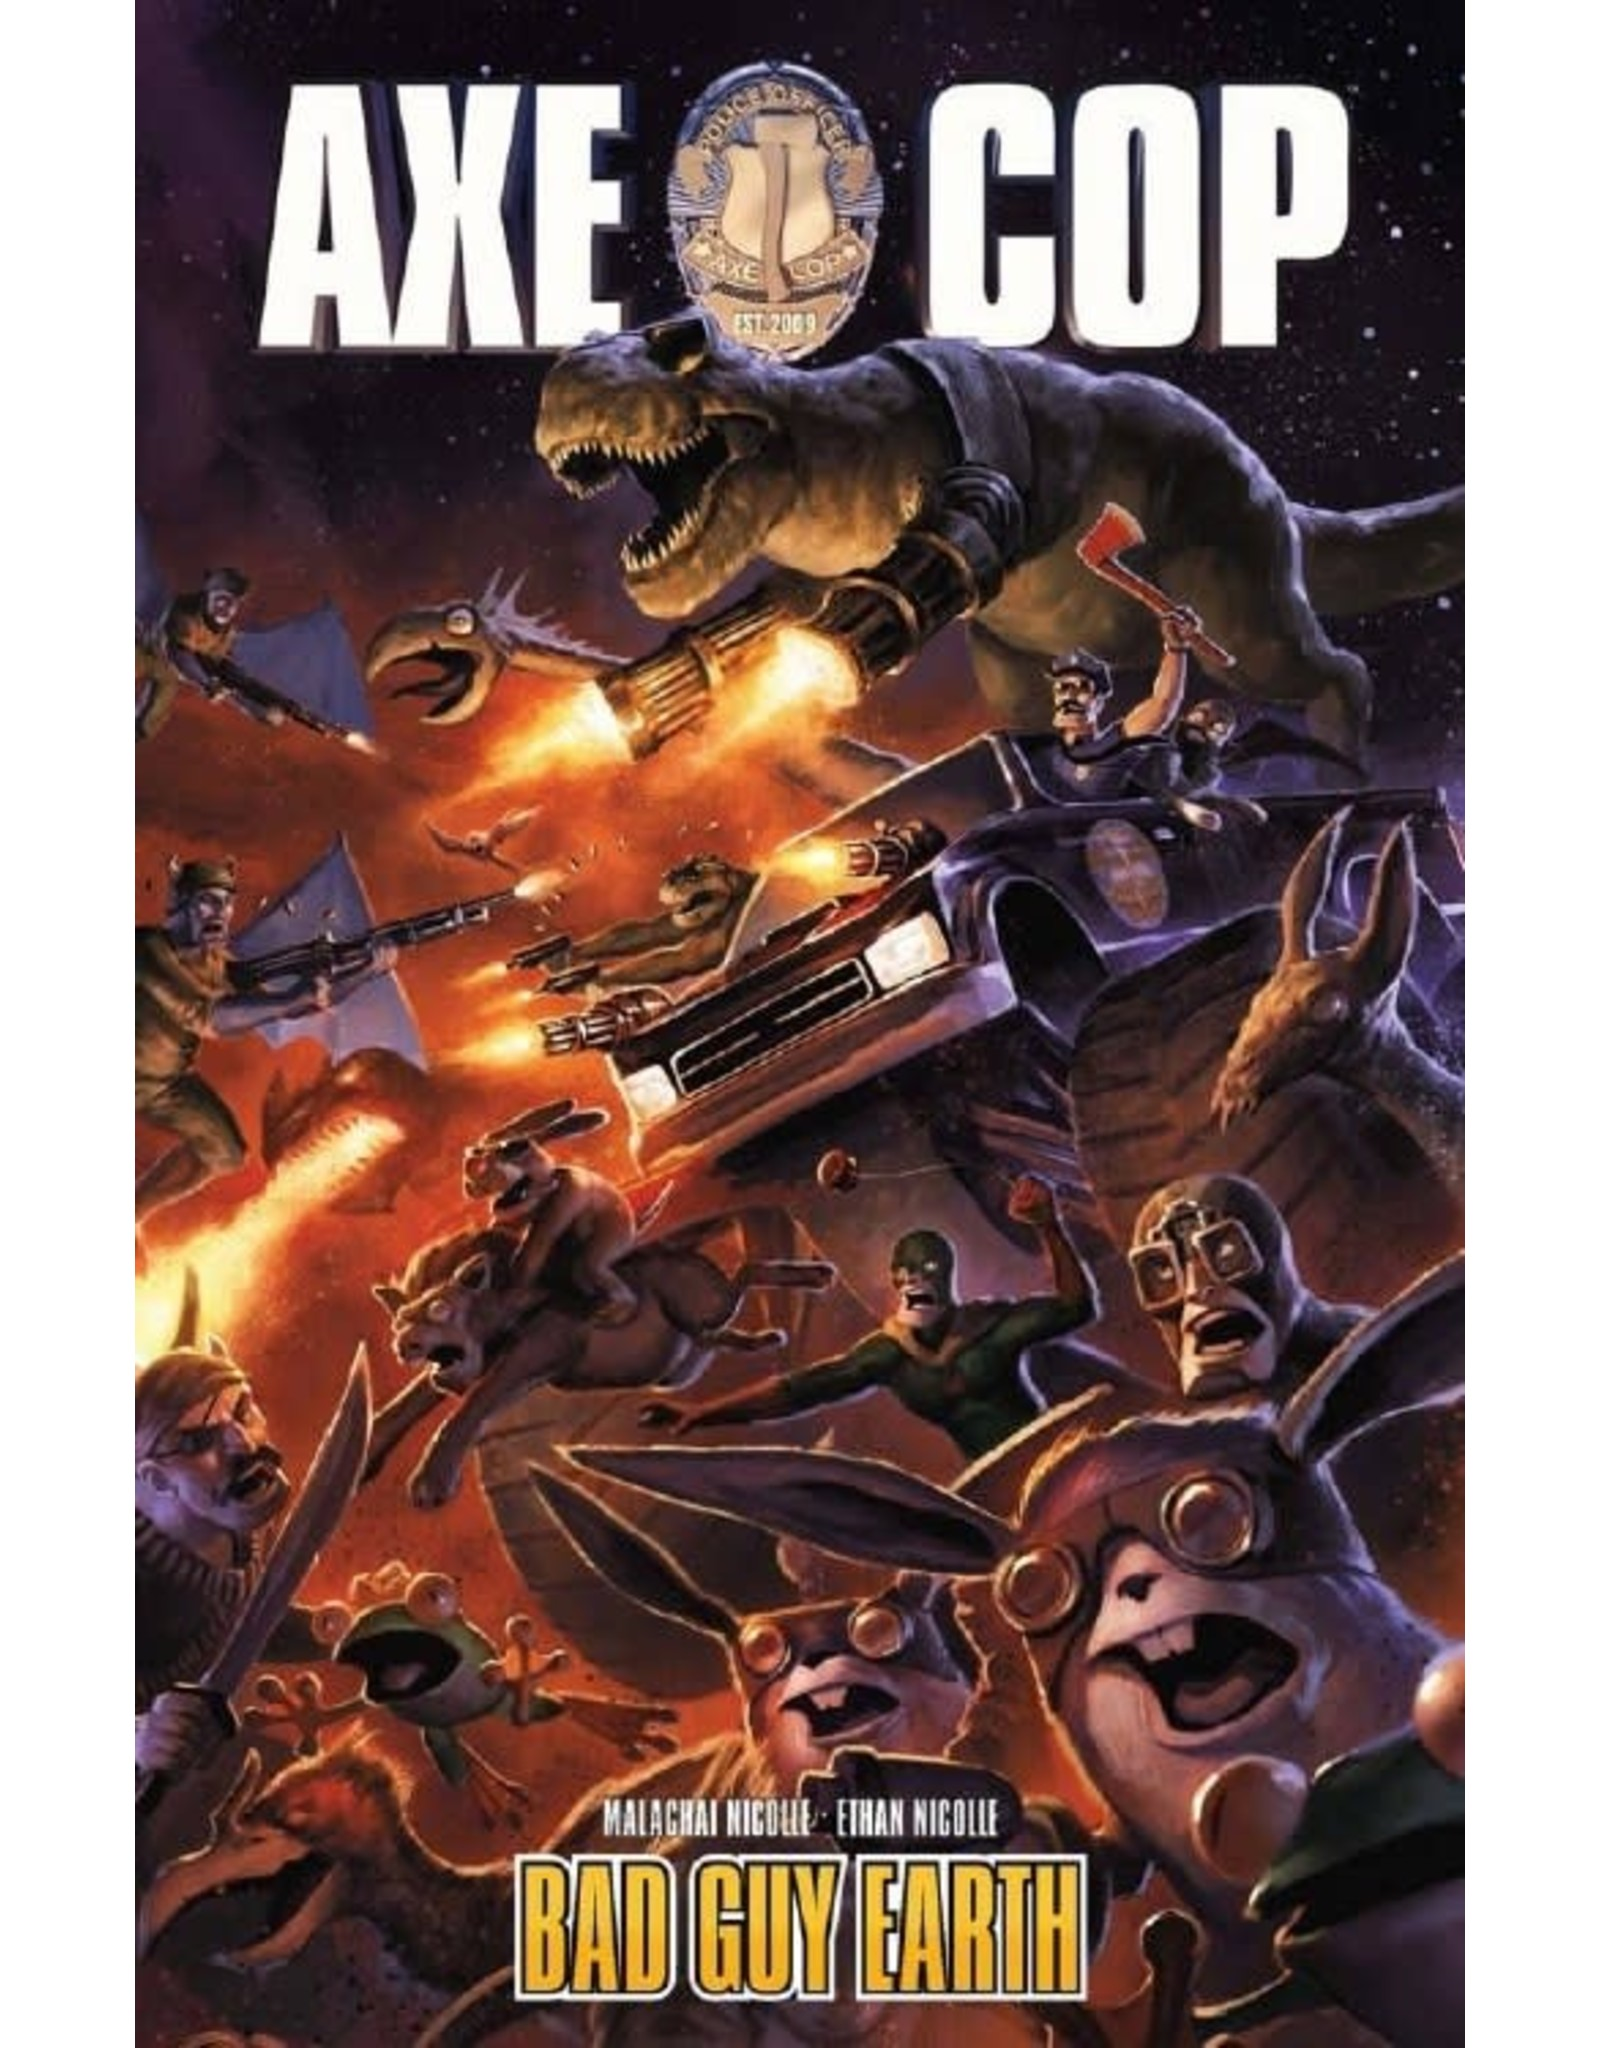 DARK HORSE COMICS AXE COP TP VOL 02 BAD GUY EARTH